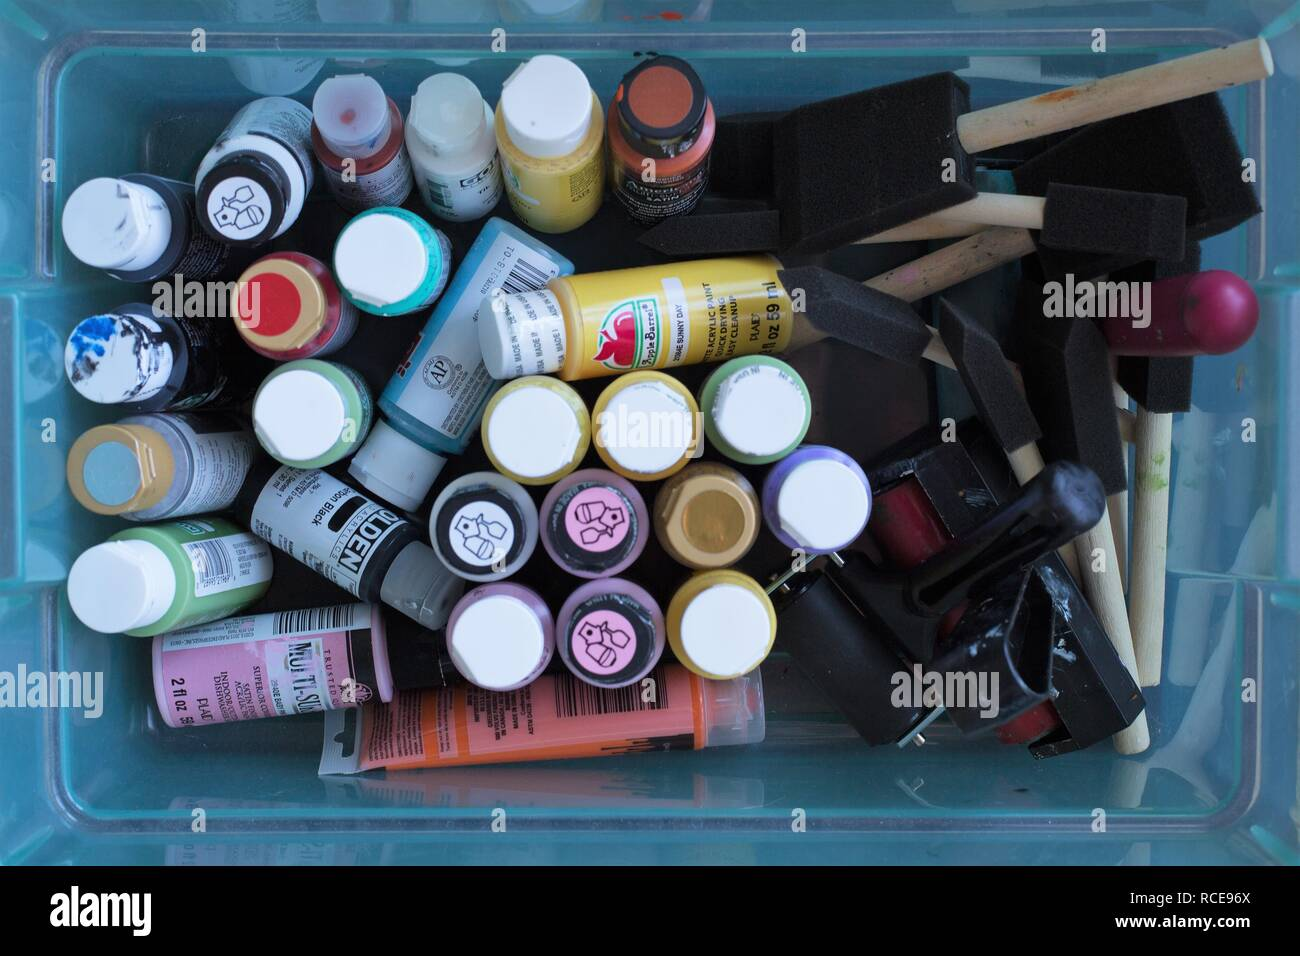 A plastic container full of acrylic paints, foam brushes, and rollers, as seen from above. - Stock Image